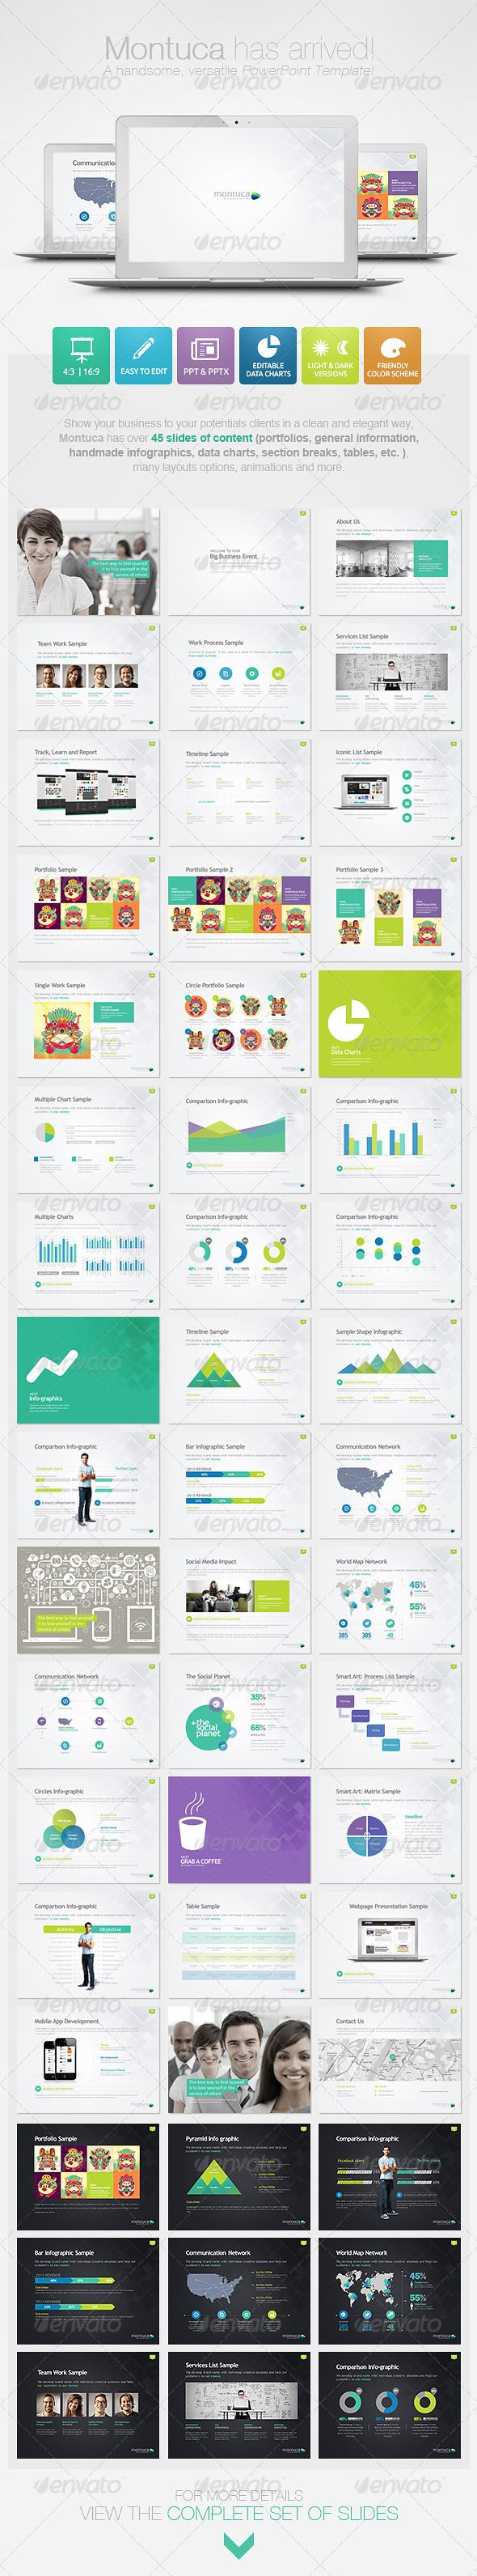 Montuca Powerpoint Presentation Template #powerpoint #template #clean #calm #simple #easy #bestDesign #graphicriver